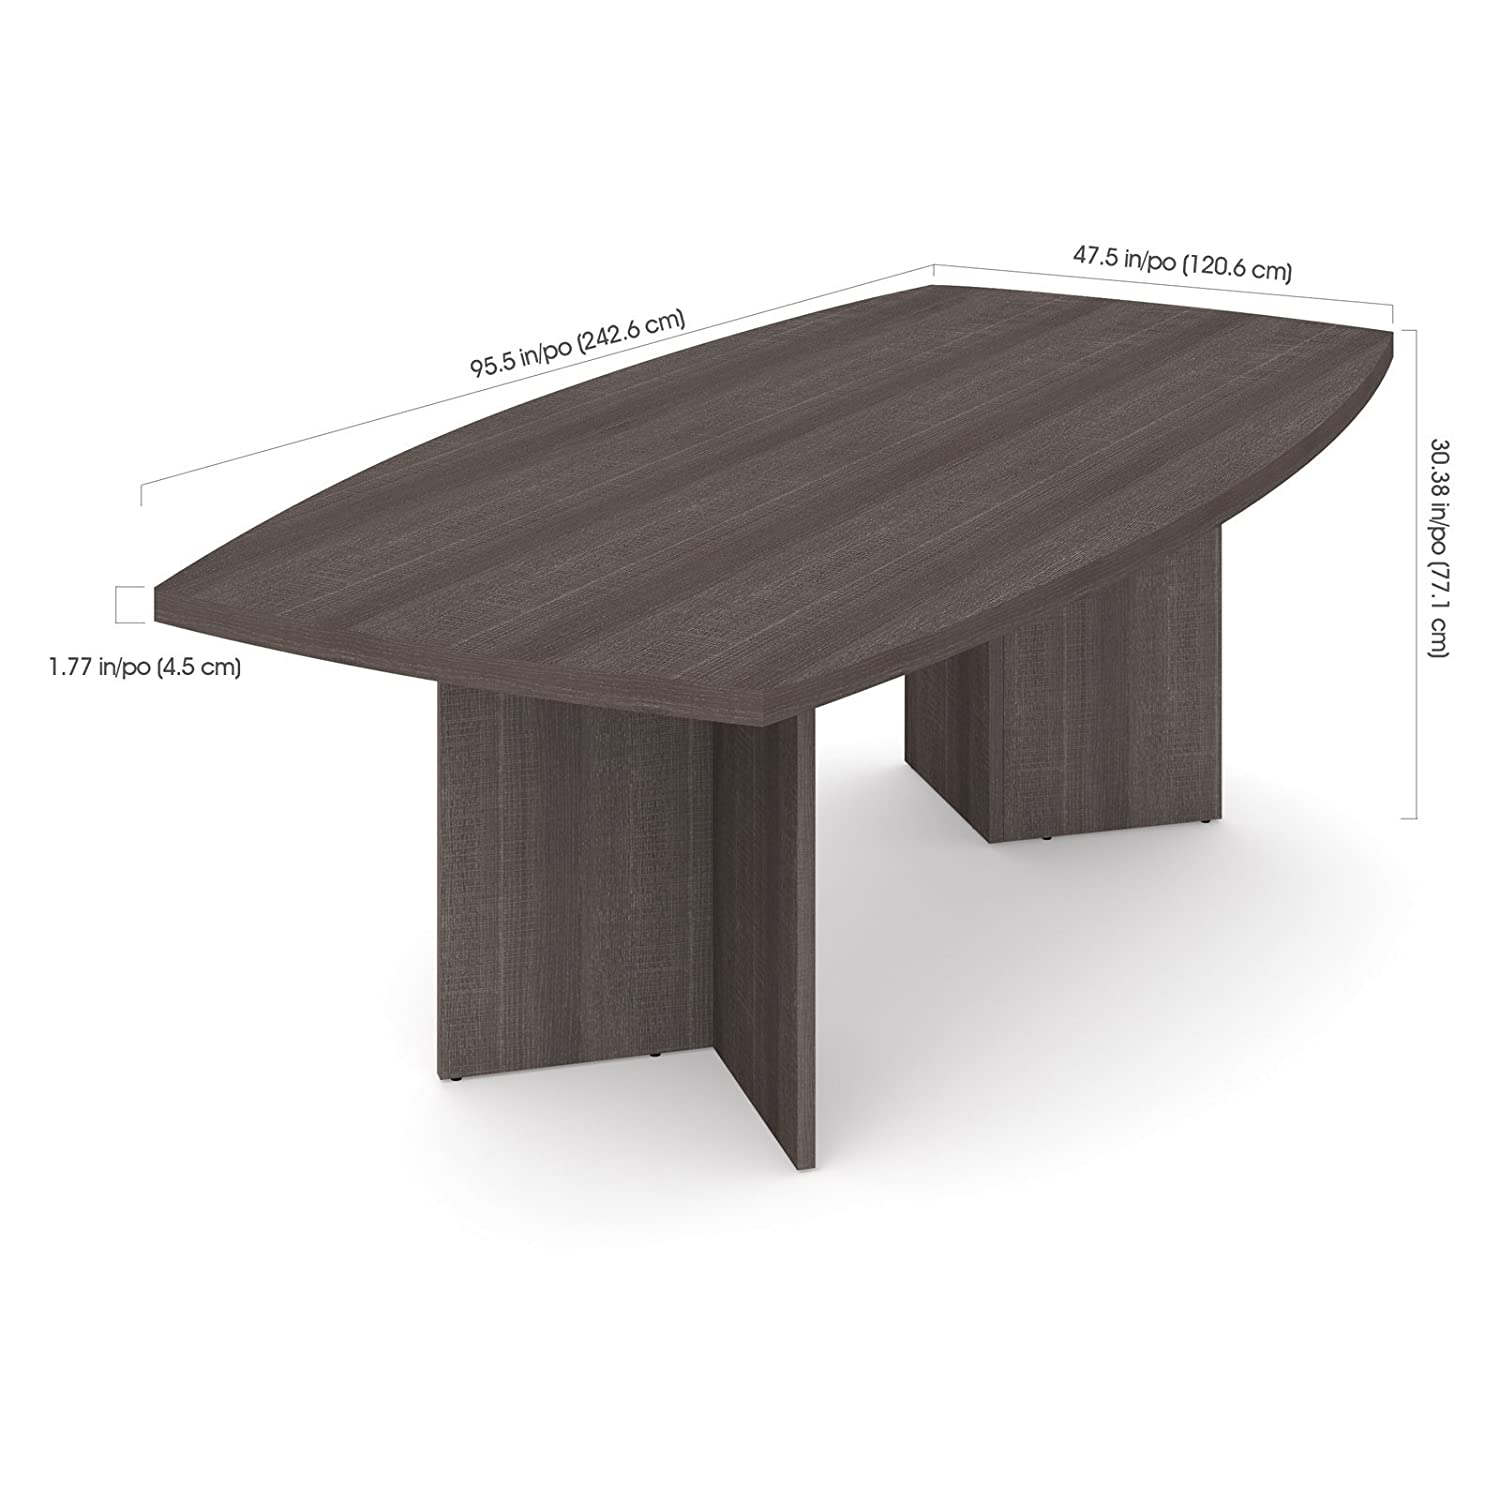 Amazoncom BoatShaped Conference Table In Bark Gray Office Products - Grey conference table